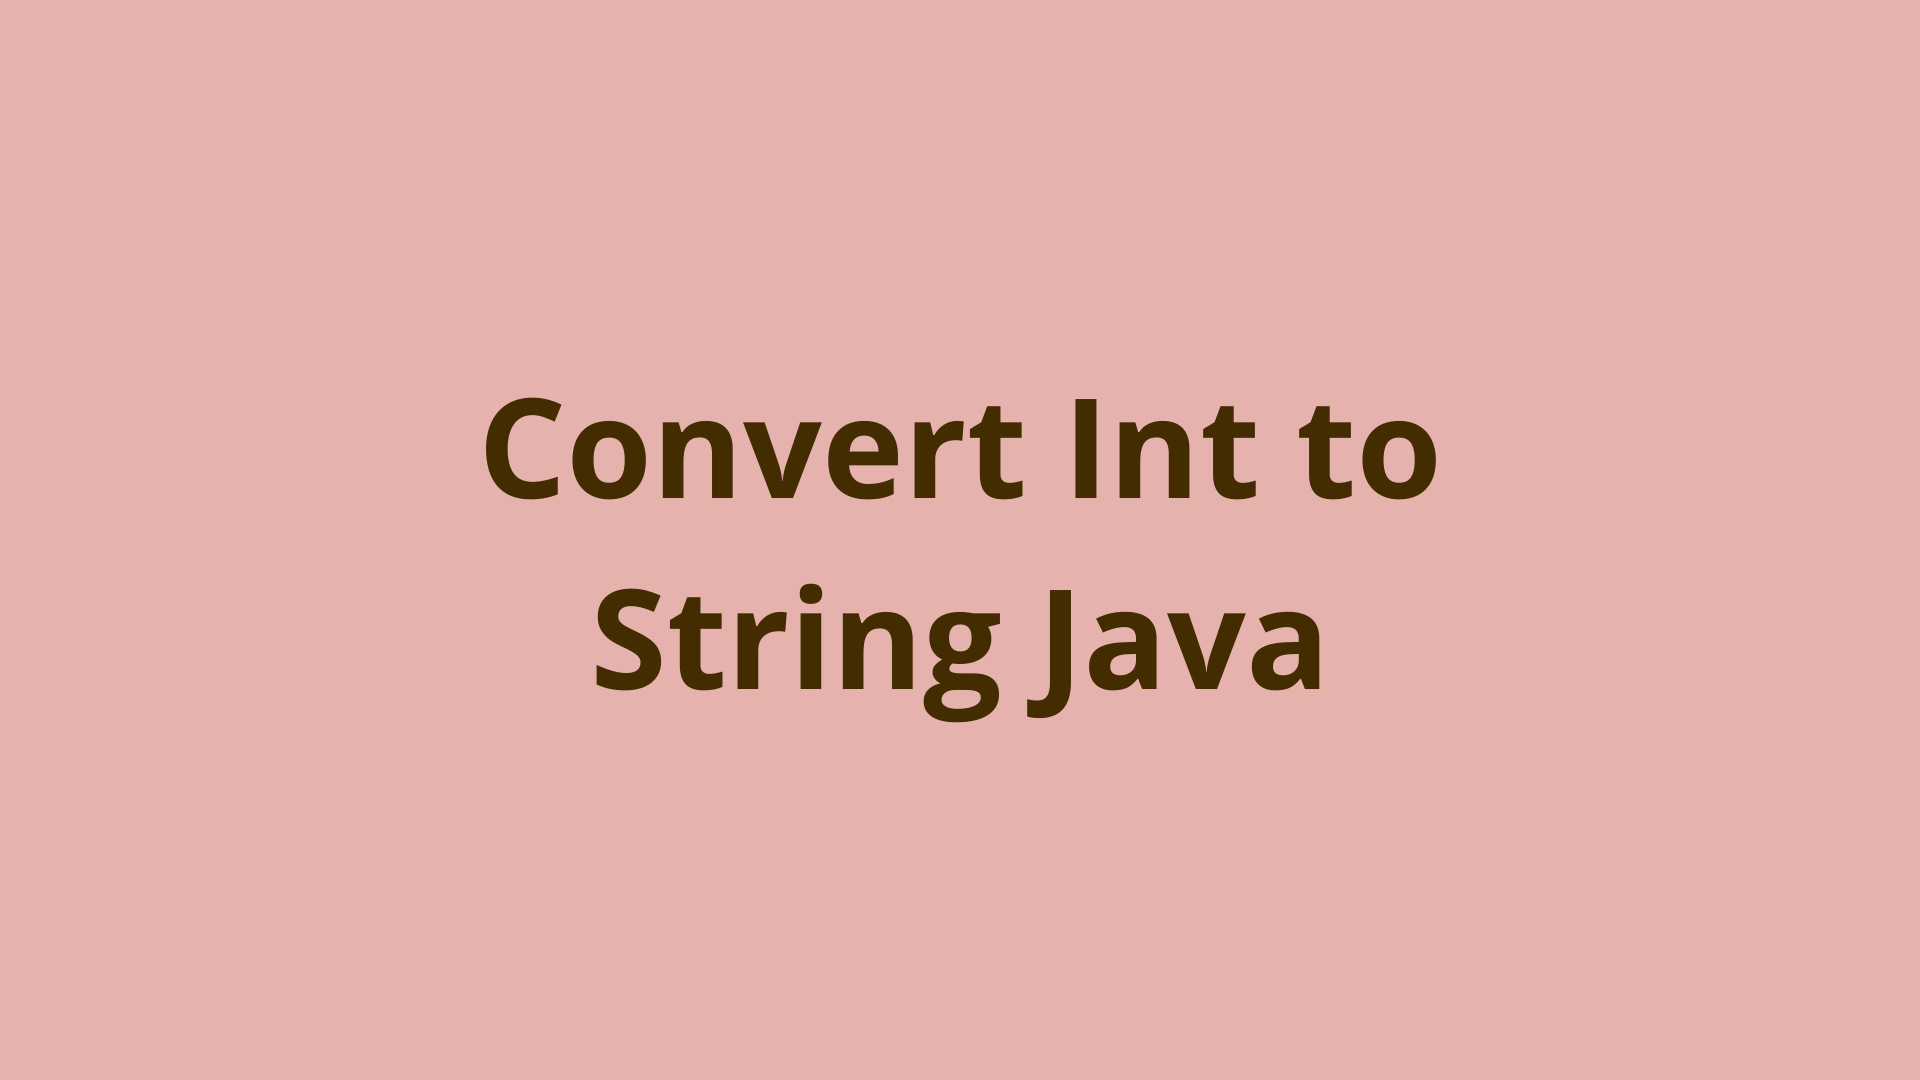 Image of Convert Int to String Java